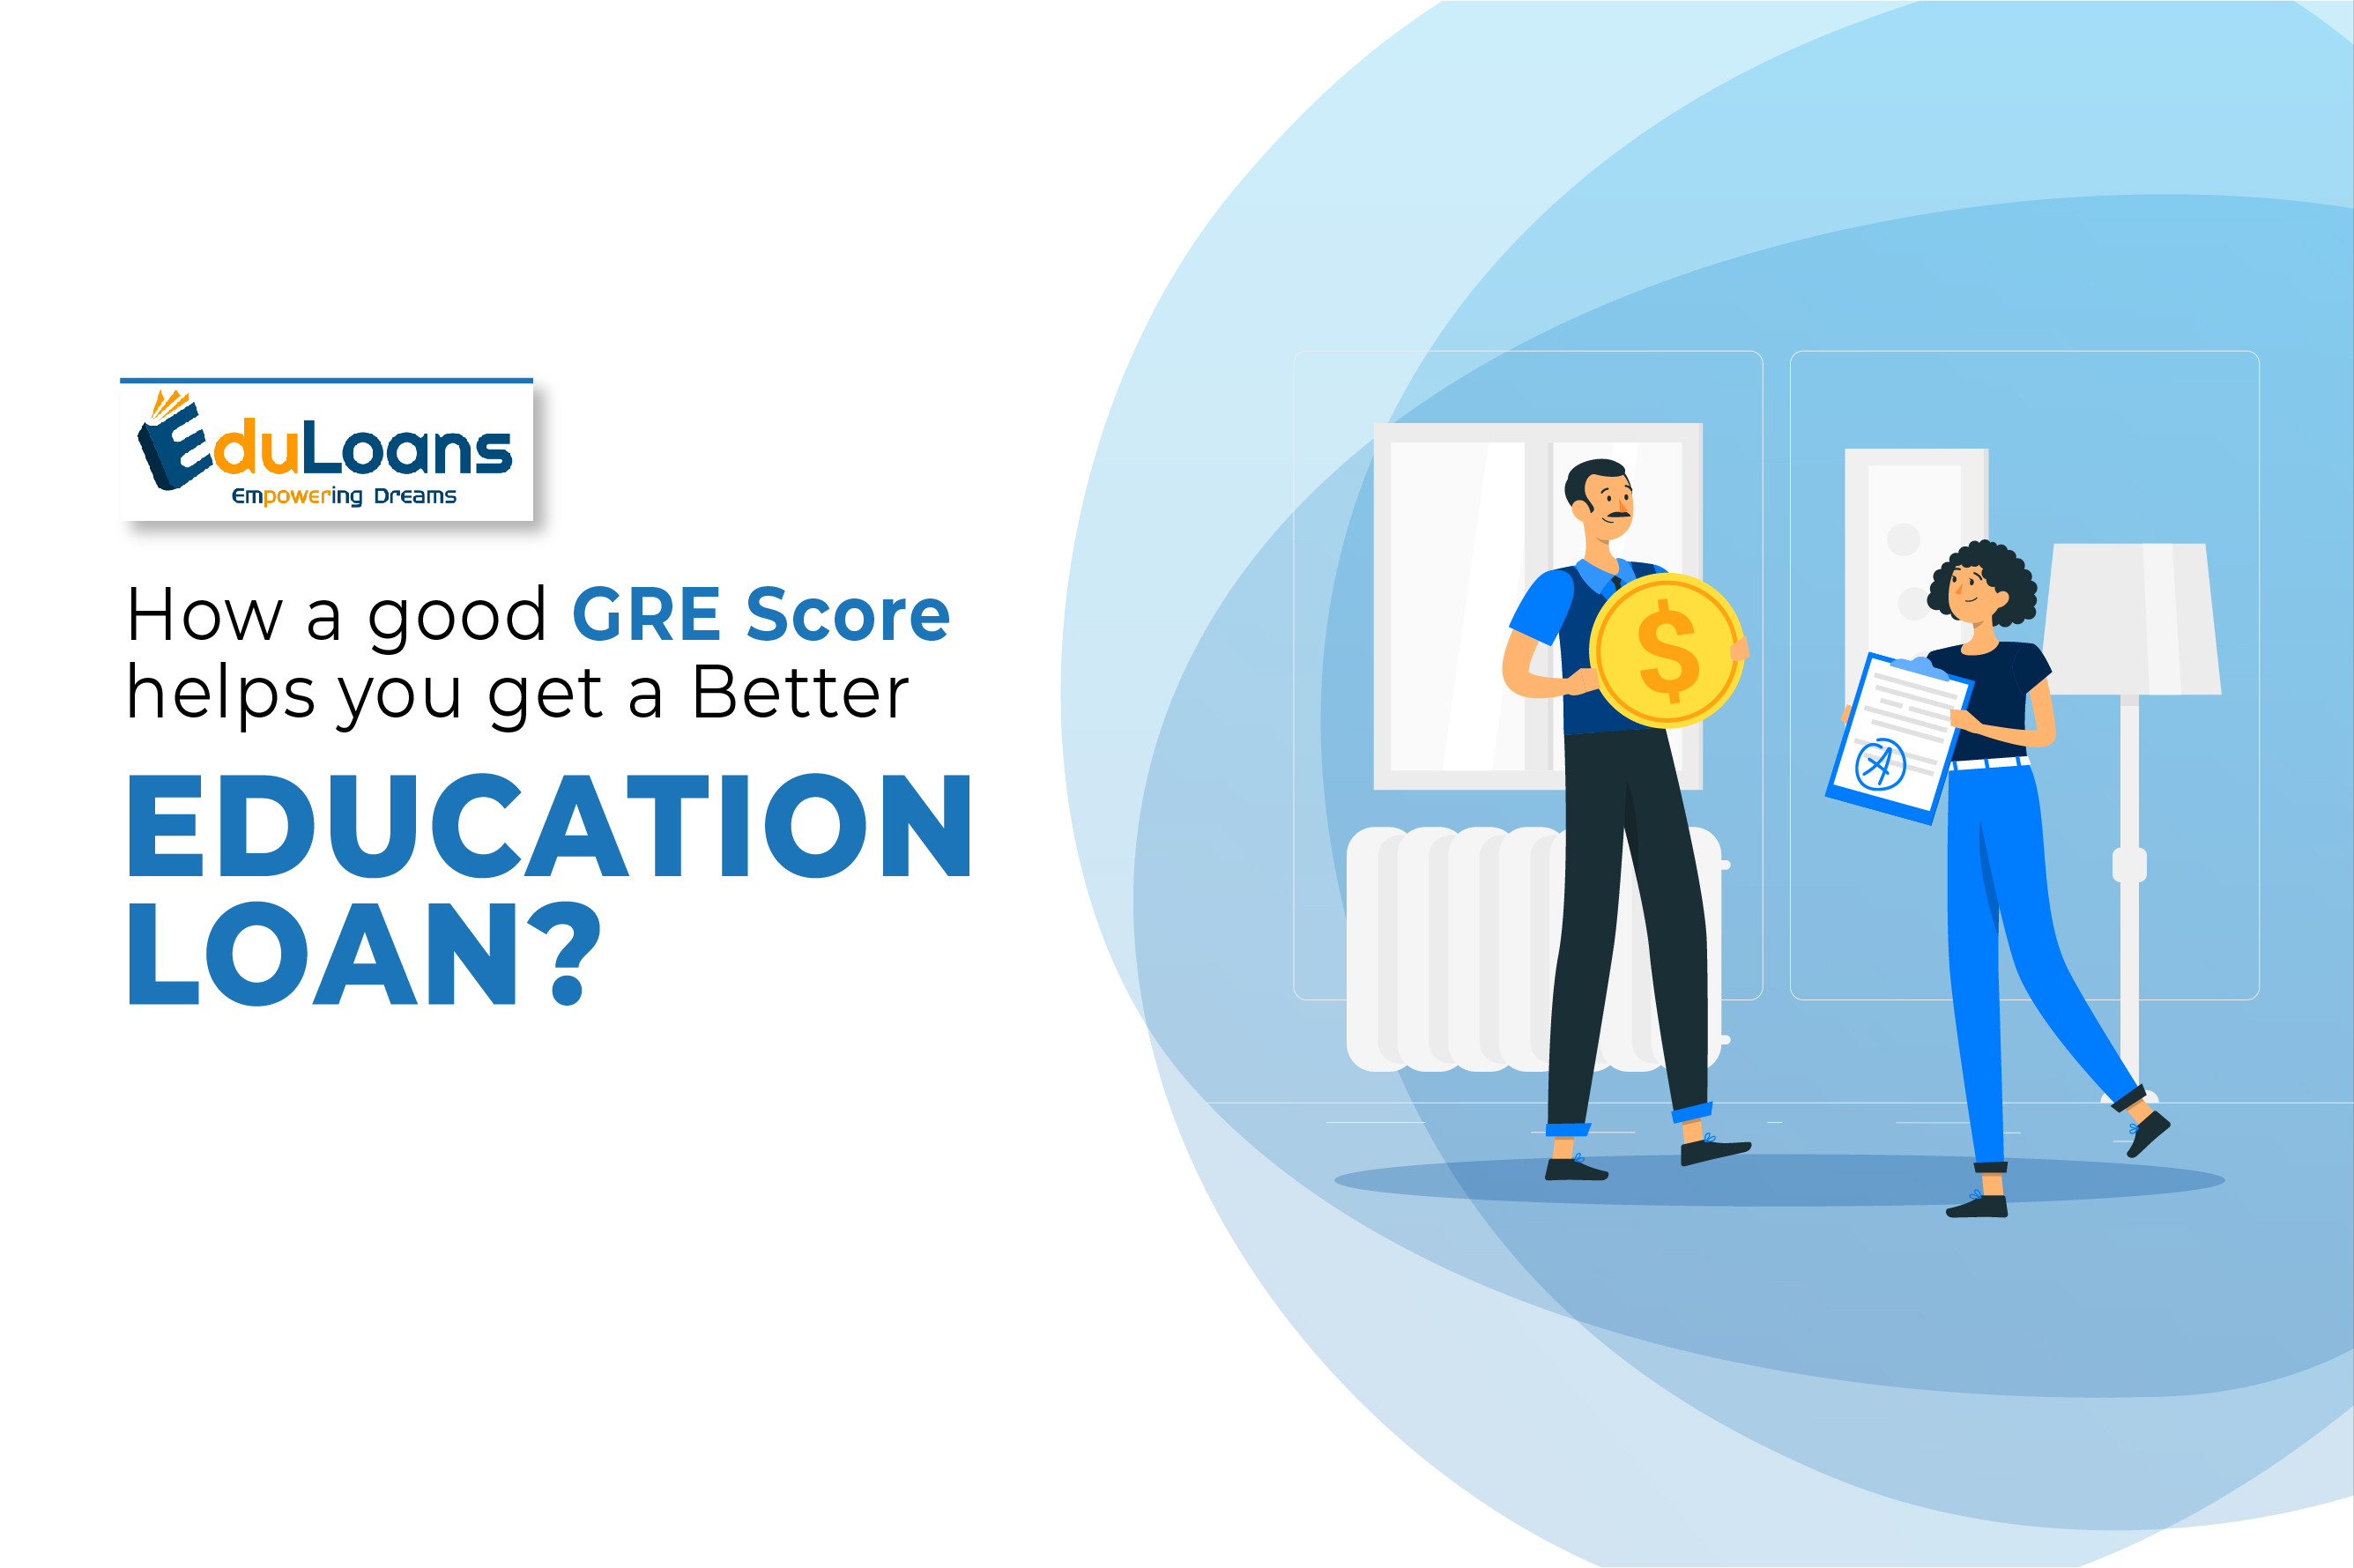 How a Good GRE Score helps you get a Better Education Loan?